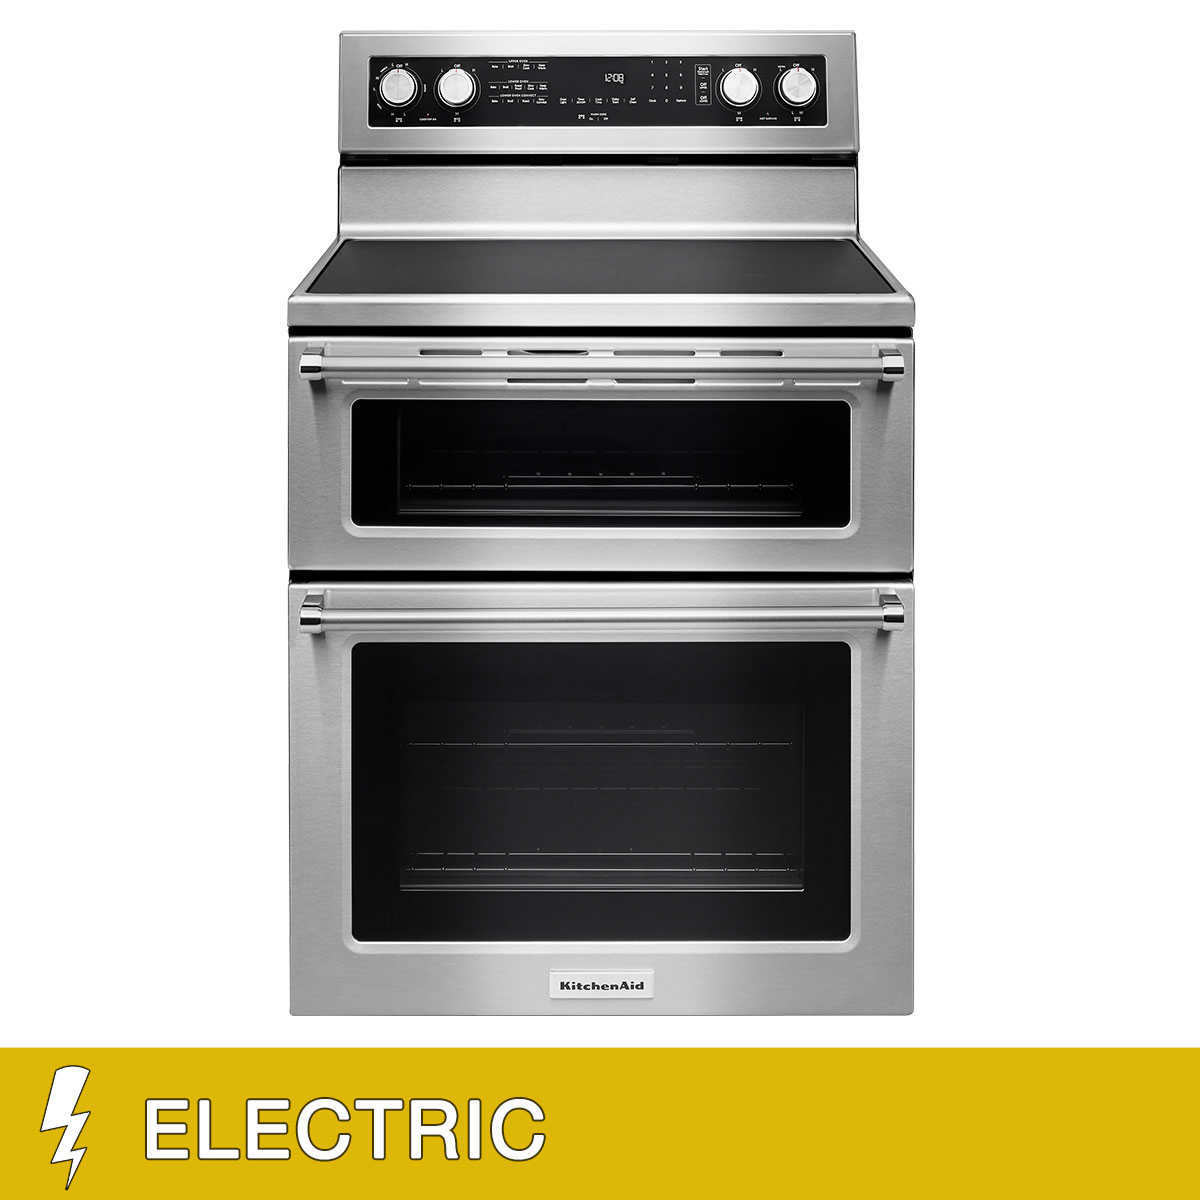 KitchenAid 6.7CuFt Freestanding ELECTRIC Double Oven Convection Range with  5 Element Cooktop in Stainless Steel